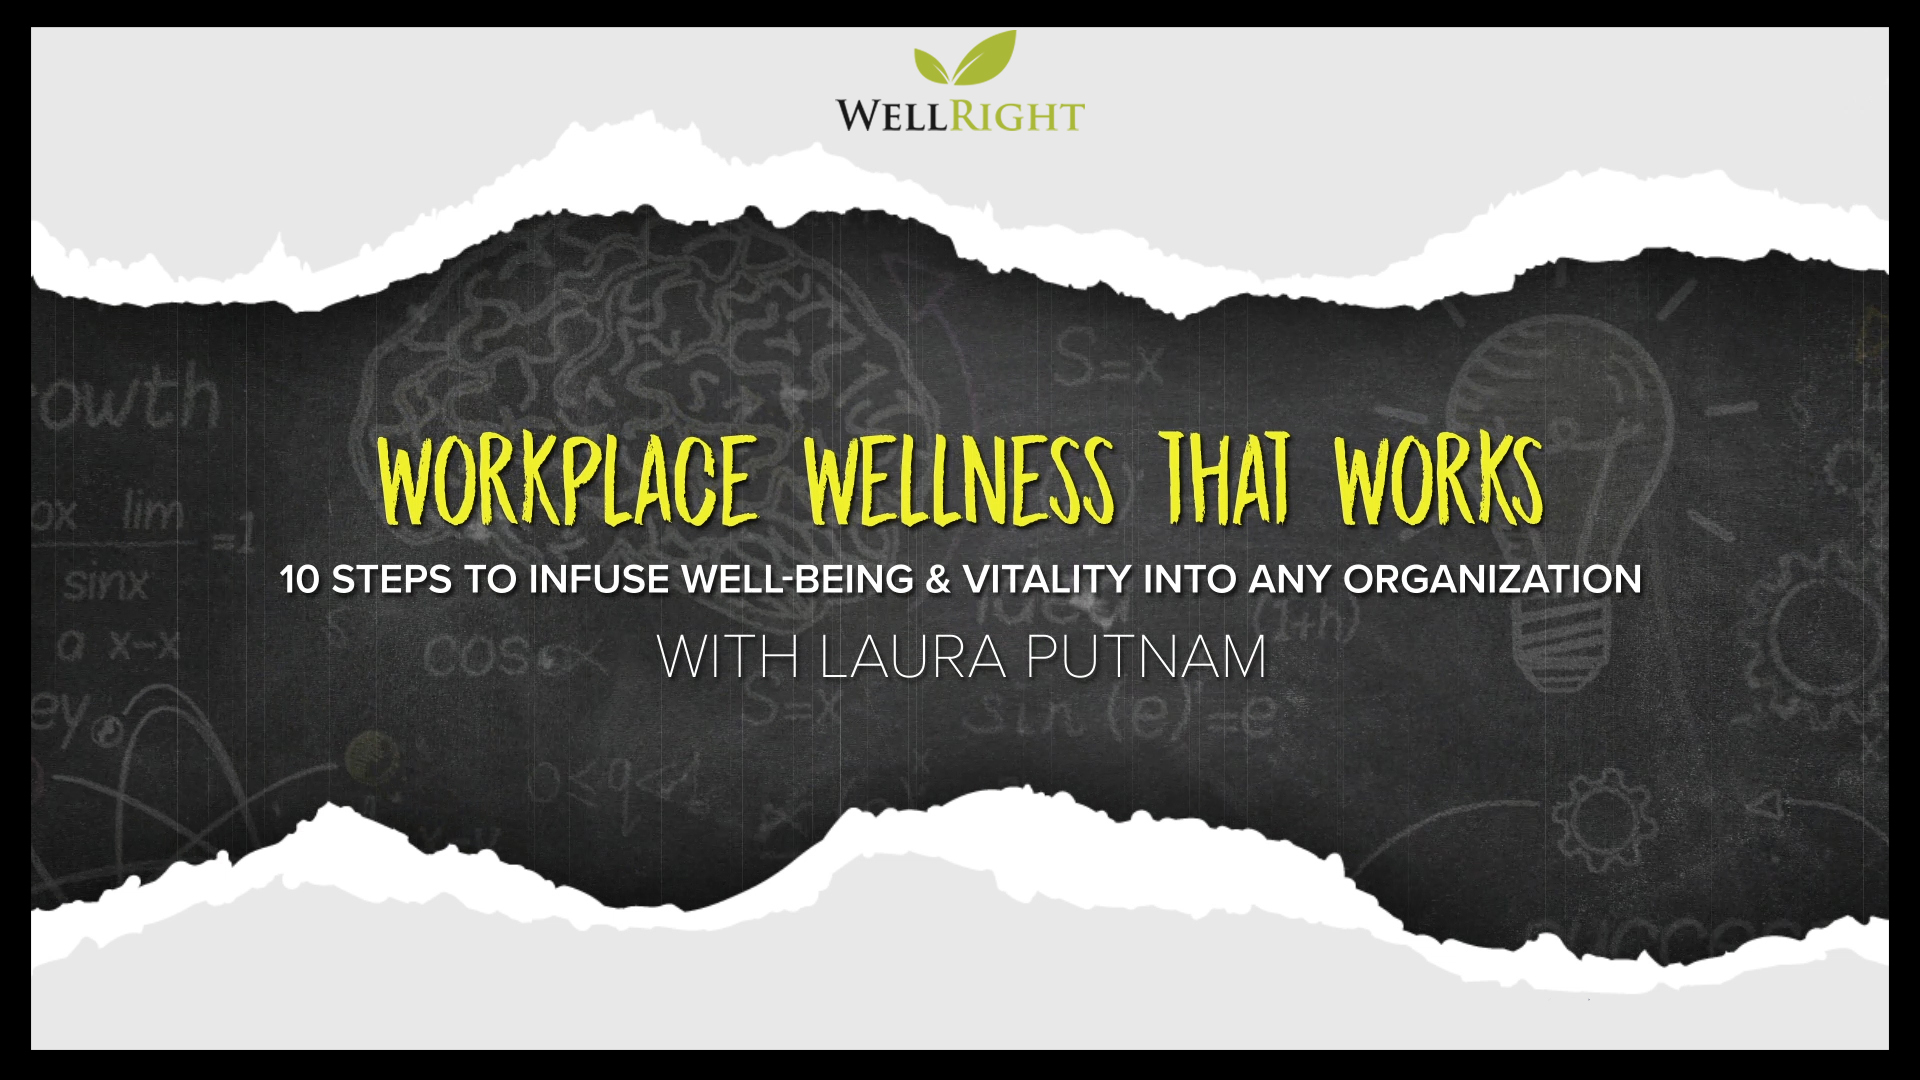 Laura Putnam Workplace Wellness That Works